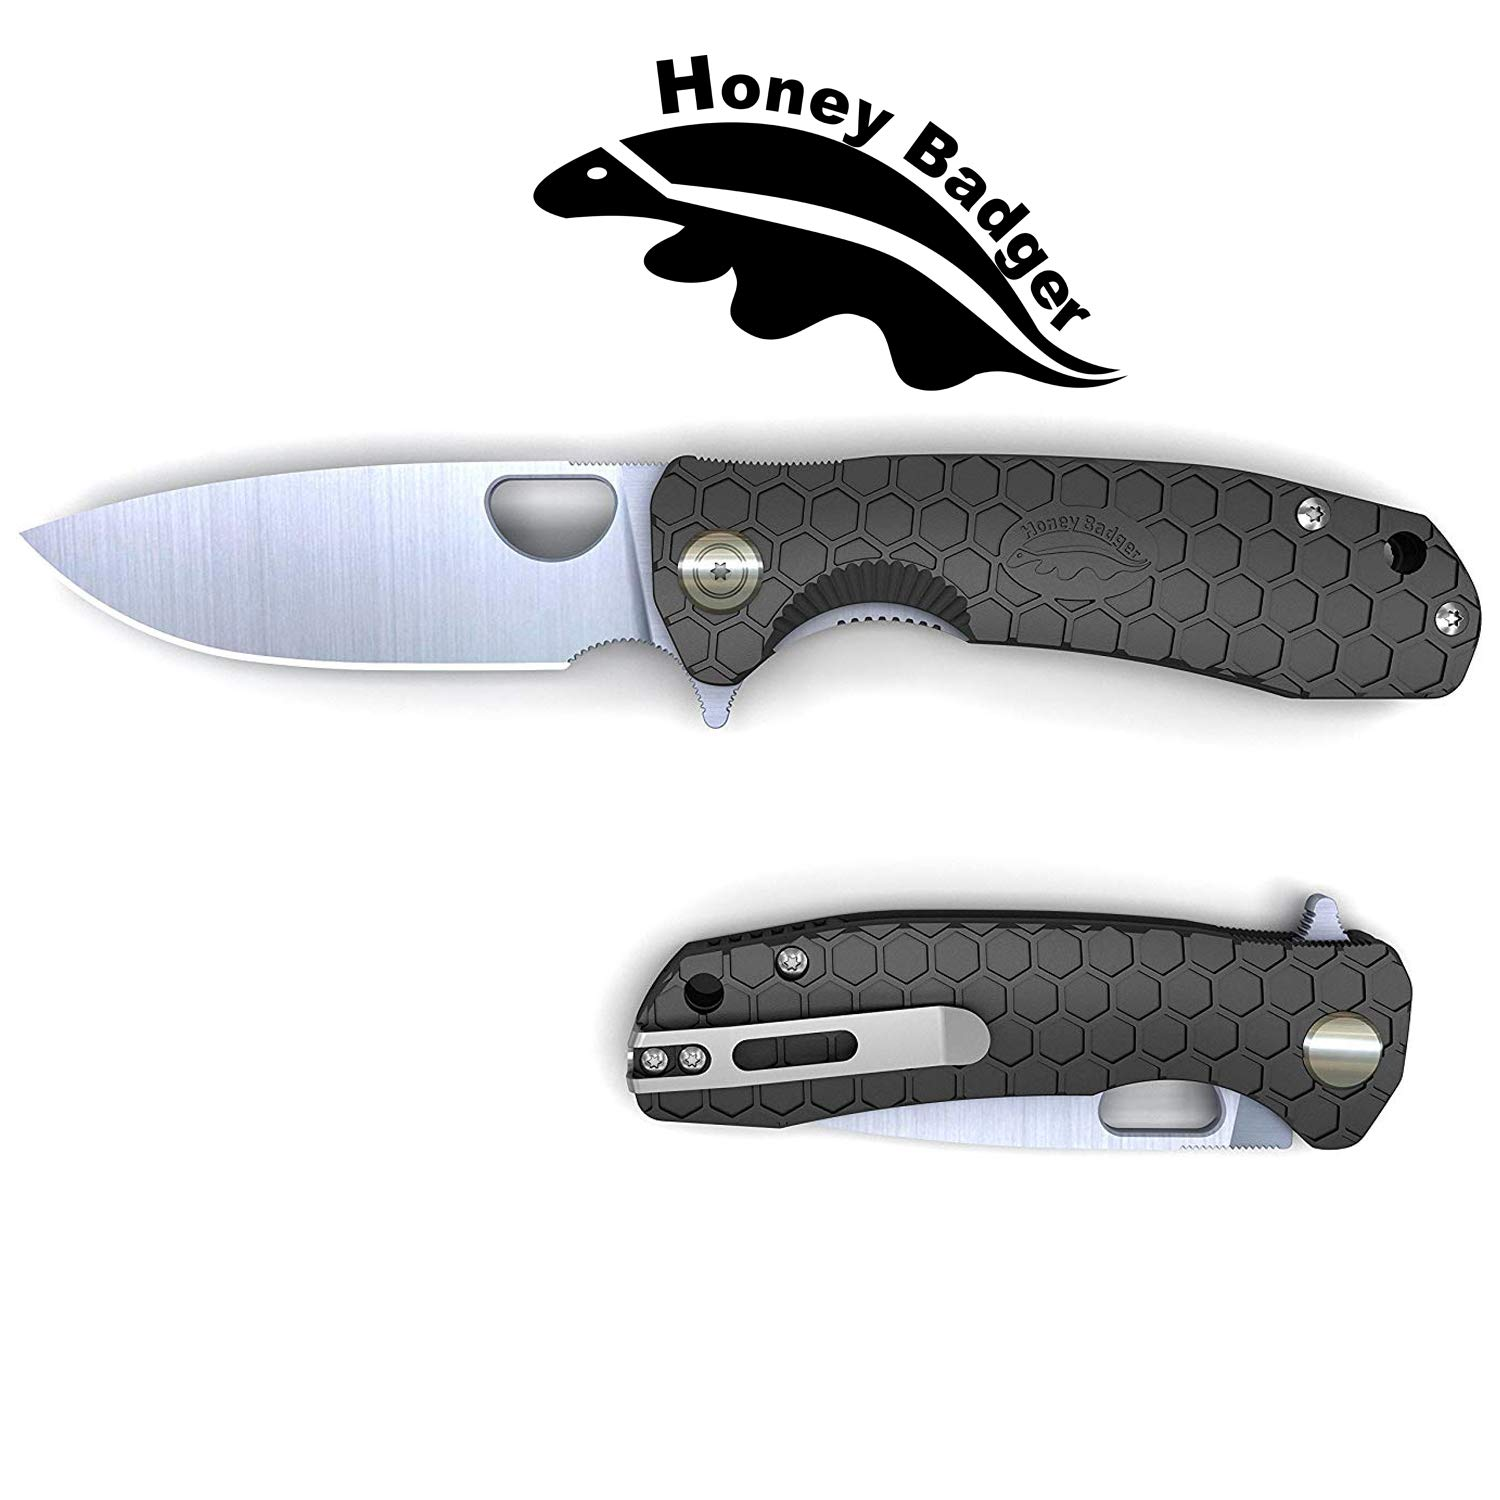 Honey Badger Pocket Knife EDC Flipper Liner Lock Folding Tactical Hunting Fishing Knife 8cr13MOV Steel Deep Pocket Carry Gift Box with Torx Wrench (Black, Large 3.98oz - 4.6'' Closed - 3.63'' Blade) by Western Active